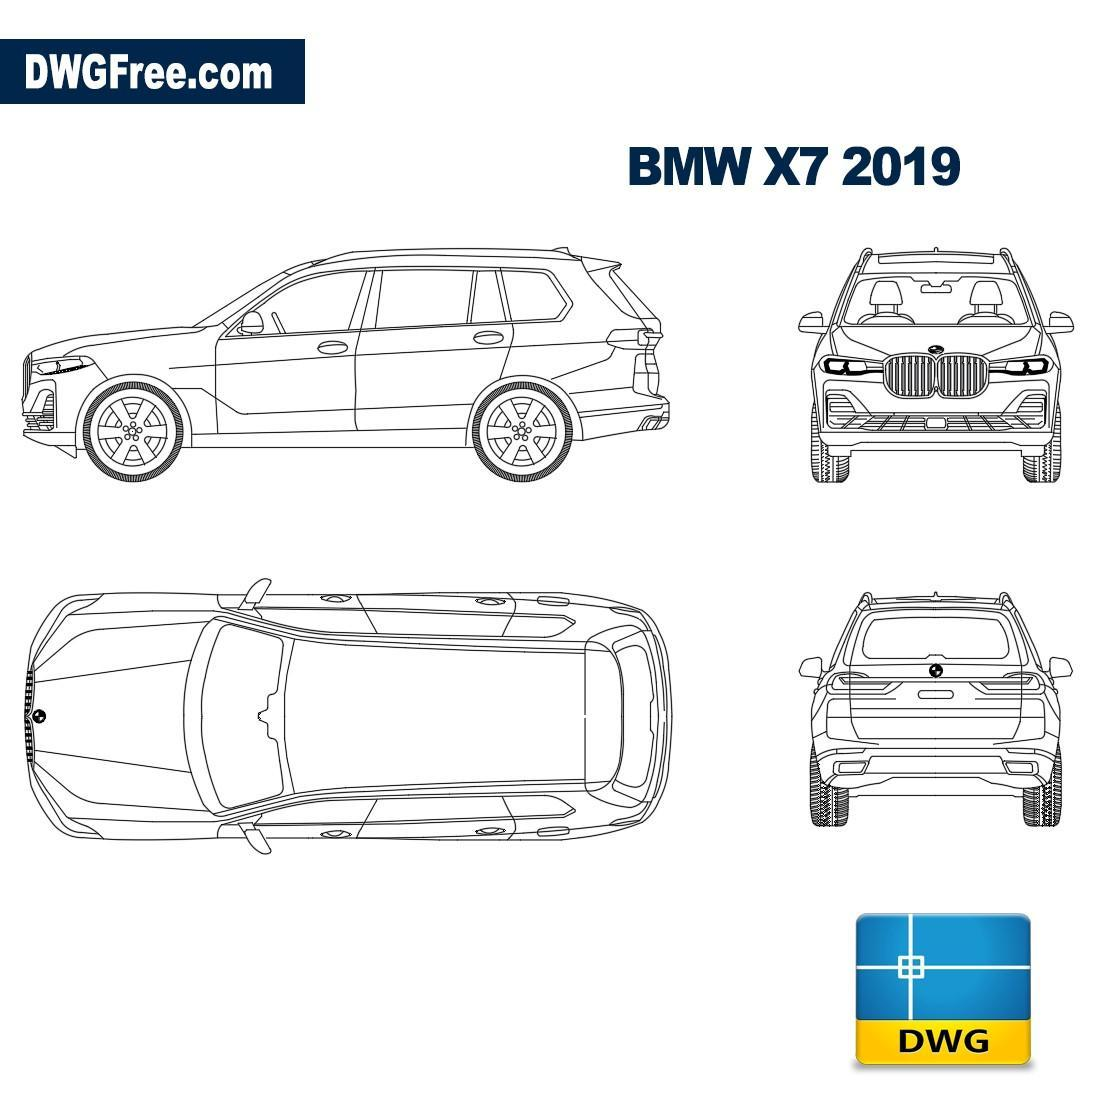 Bmw X7 2019 Dwg Autocad Blocks Free Download Dwg 2d